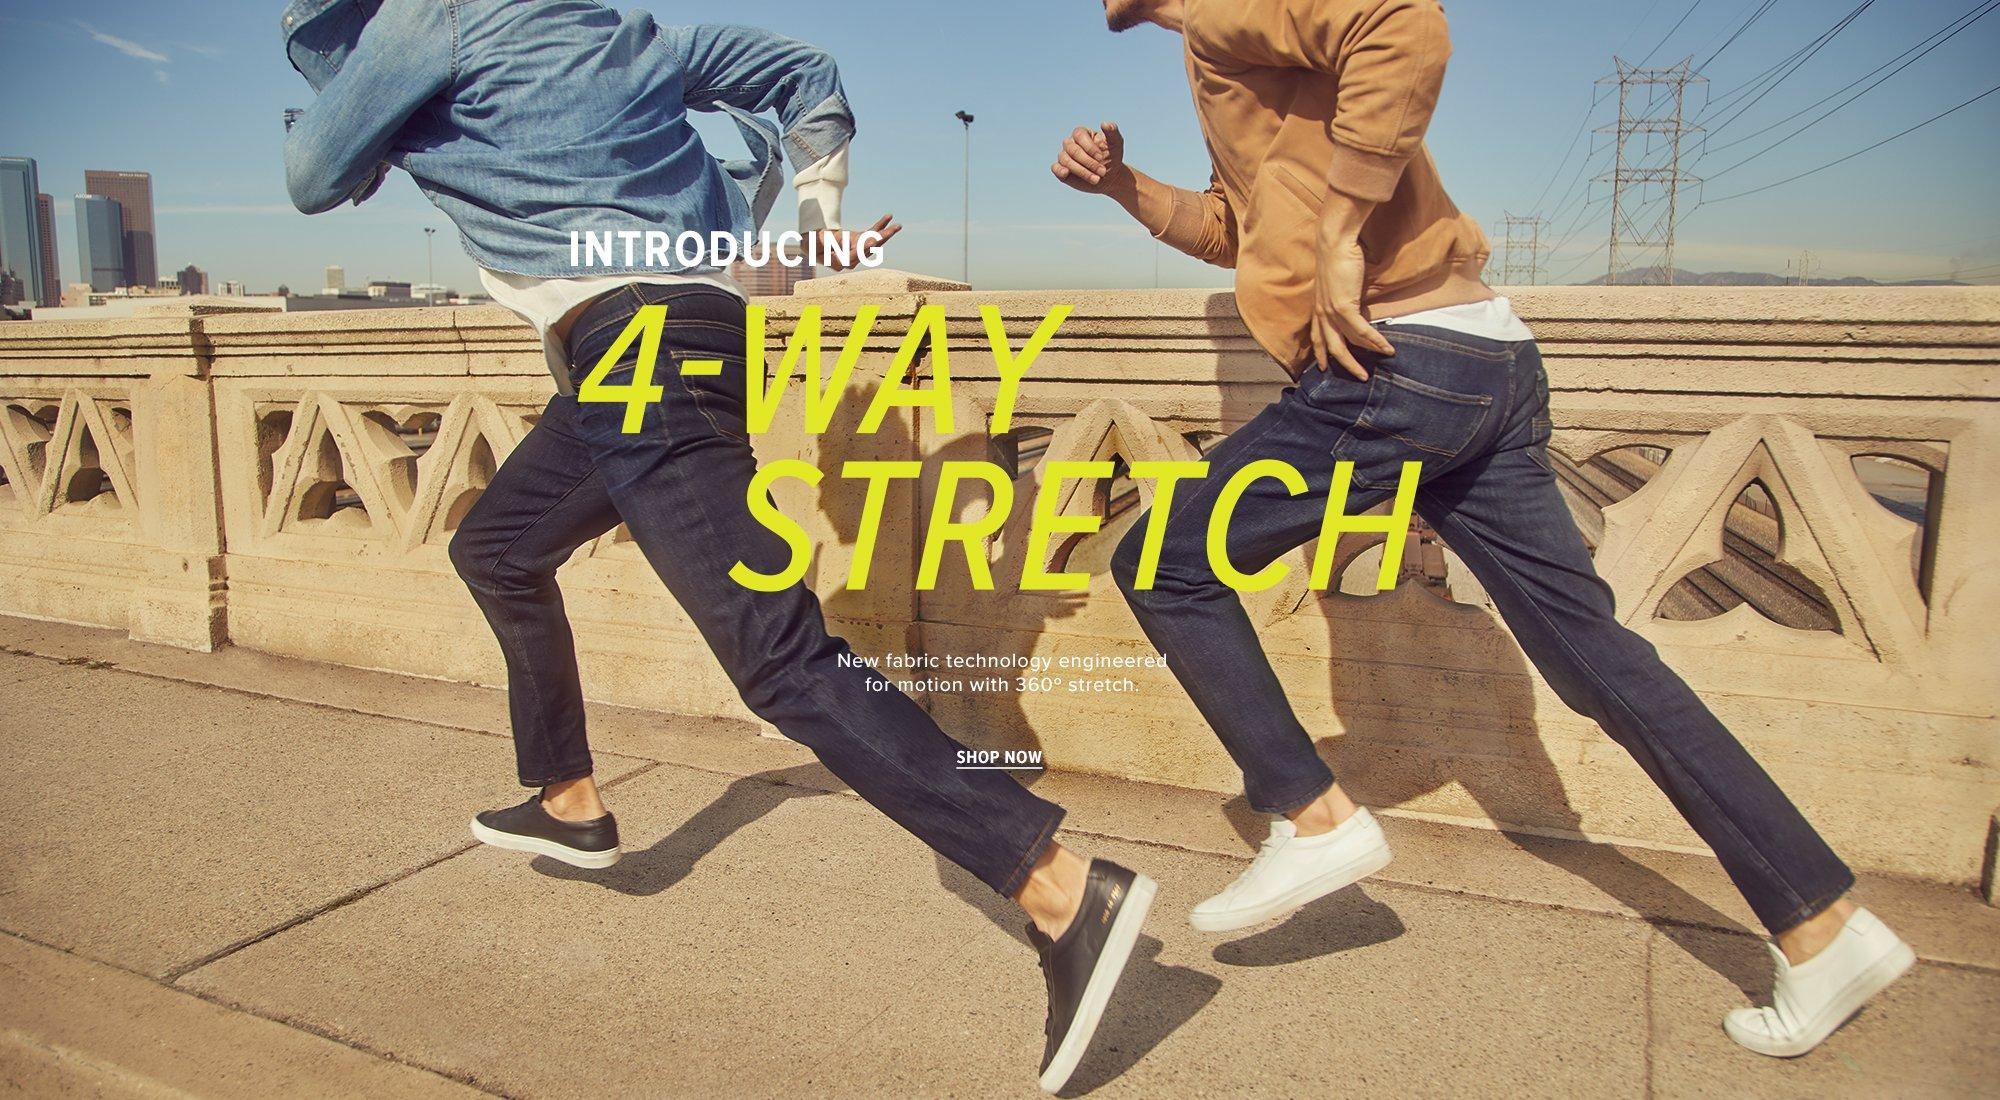 4-Way Stretch: Introducing new fabric technology engineered for motion with 360º stretch.